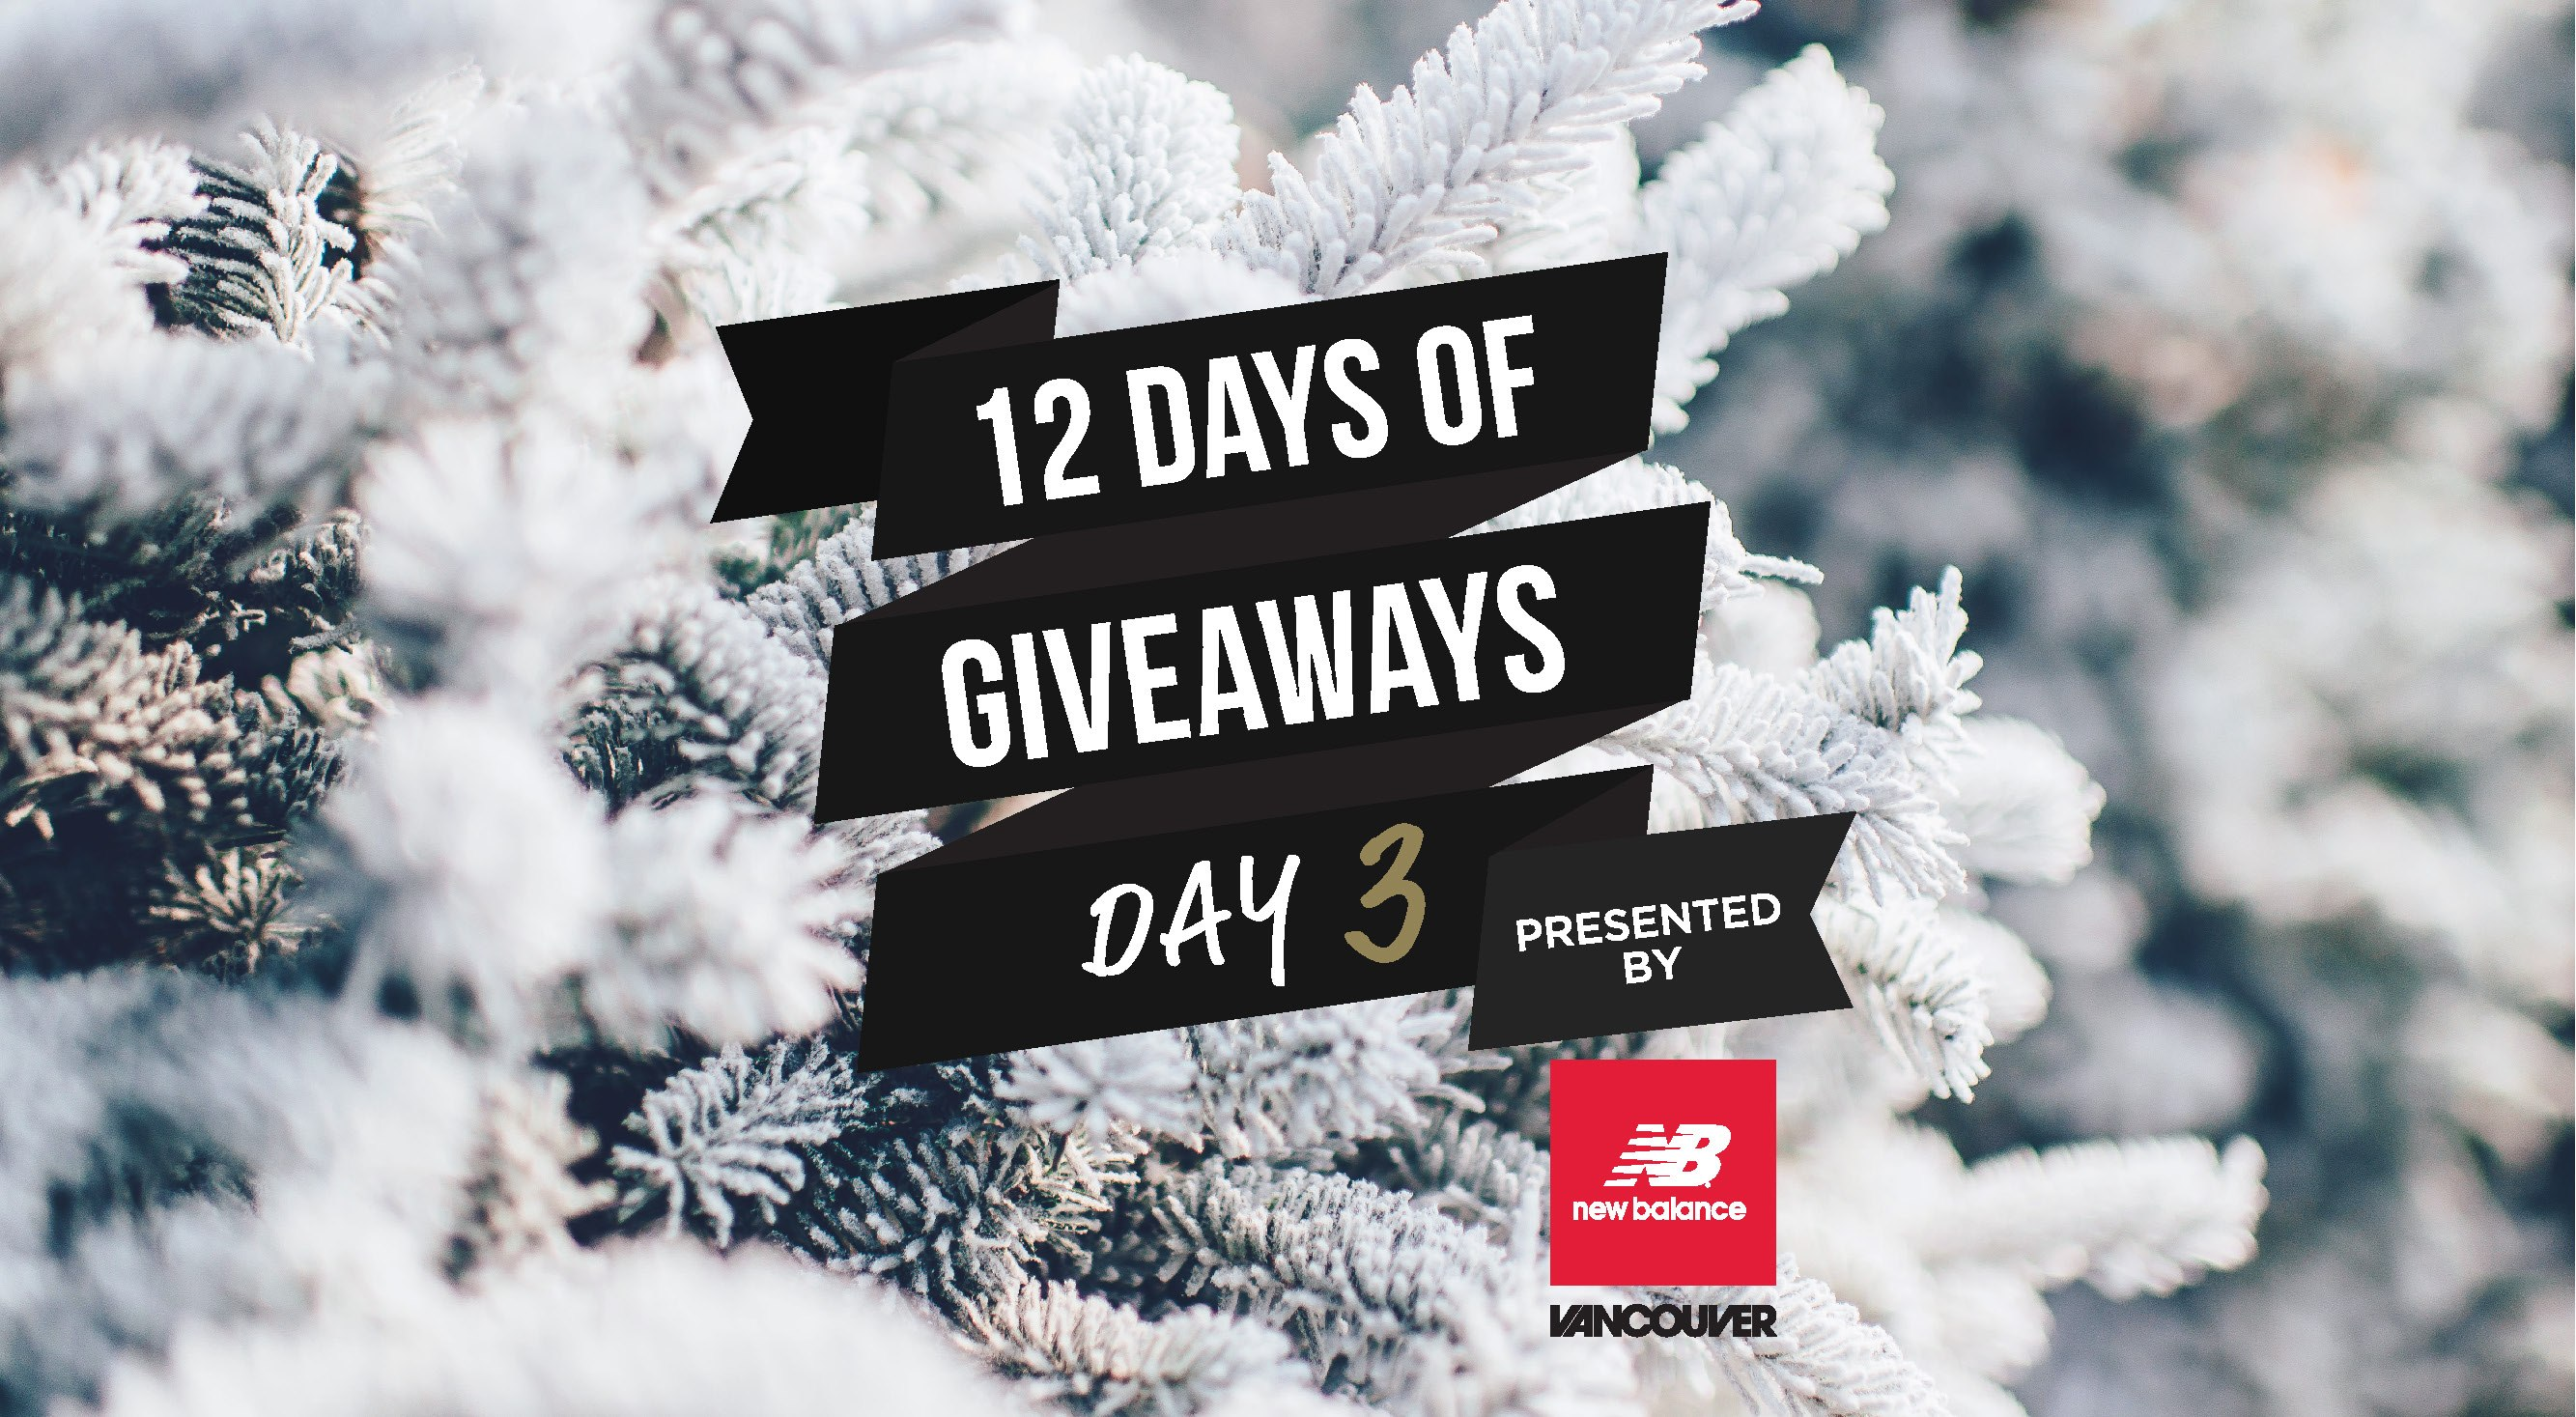 12 Days of Giveaways: Get DIPT and dress like the 'Nucks